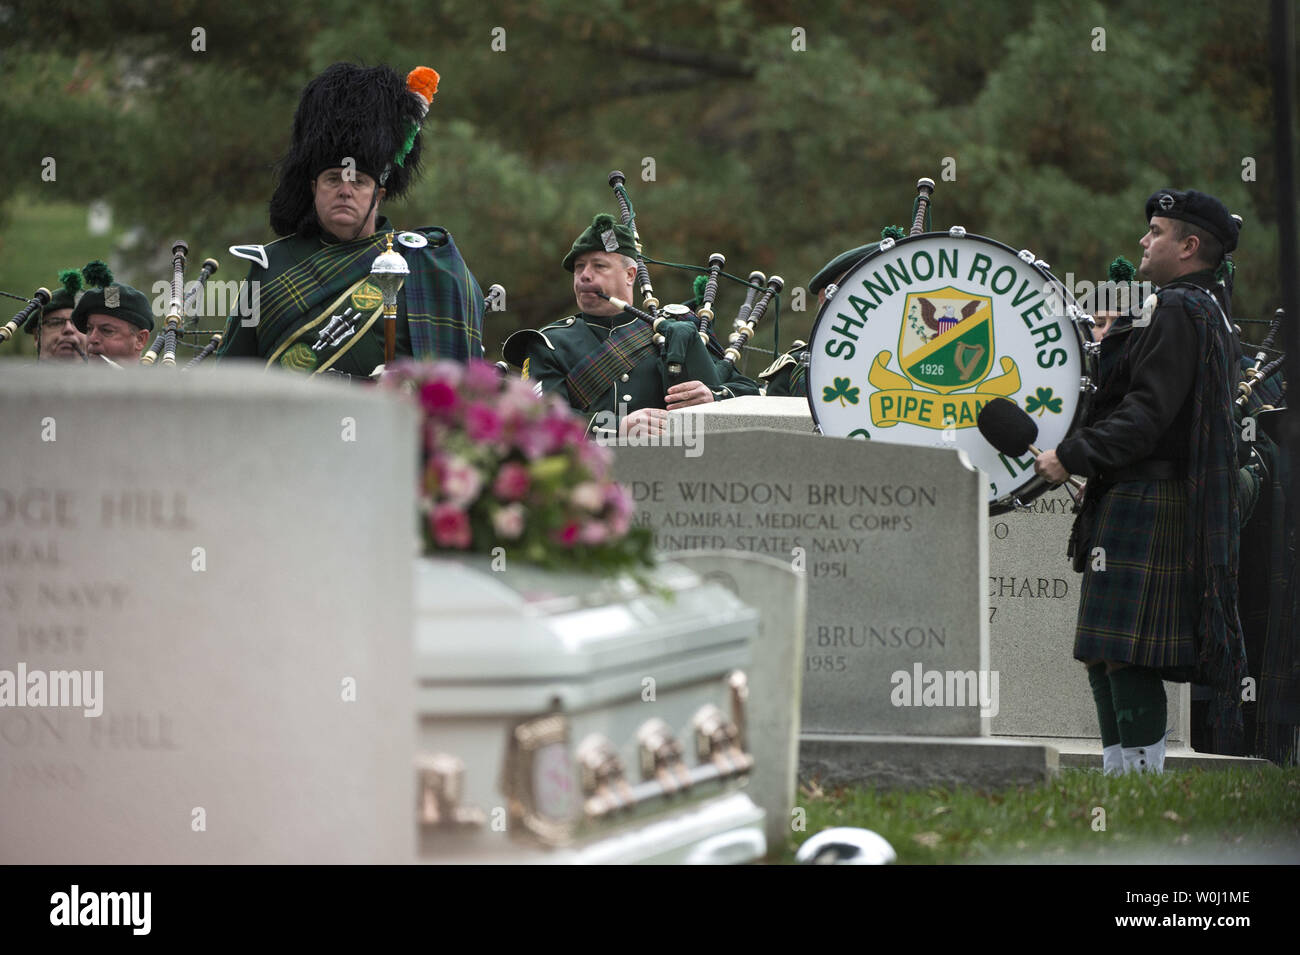 The Shannon Rovers performs at the funeral for actress Maureen O'Hara as she is buried next to her husband Ret. U.S. Air Force Brig. Gen. Charles Blair, at Arlington National Cemetery in Arlington, Virginia on November 9, 2015. O'Hara, 95, starred in 'Miracle on 34th Street' and other classic hollywood films. Photo by Kevin Dietsch/UPI. - Stock Image